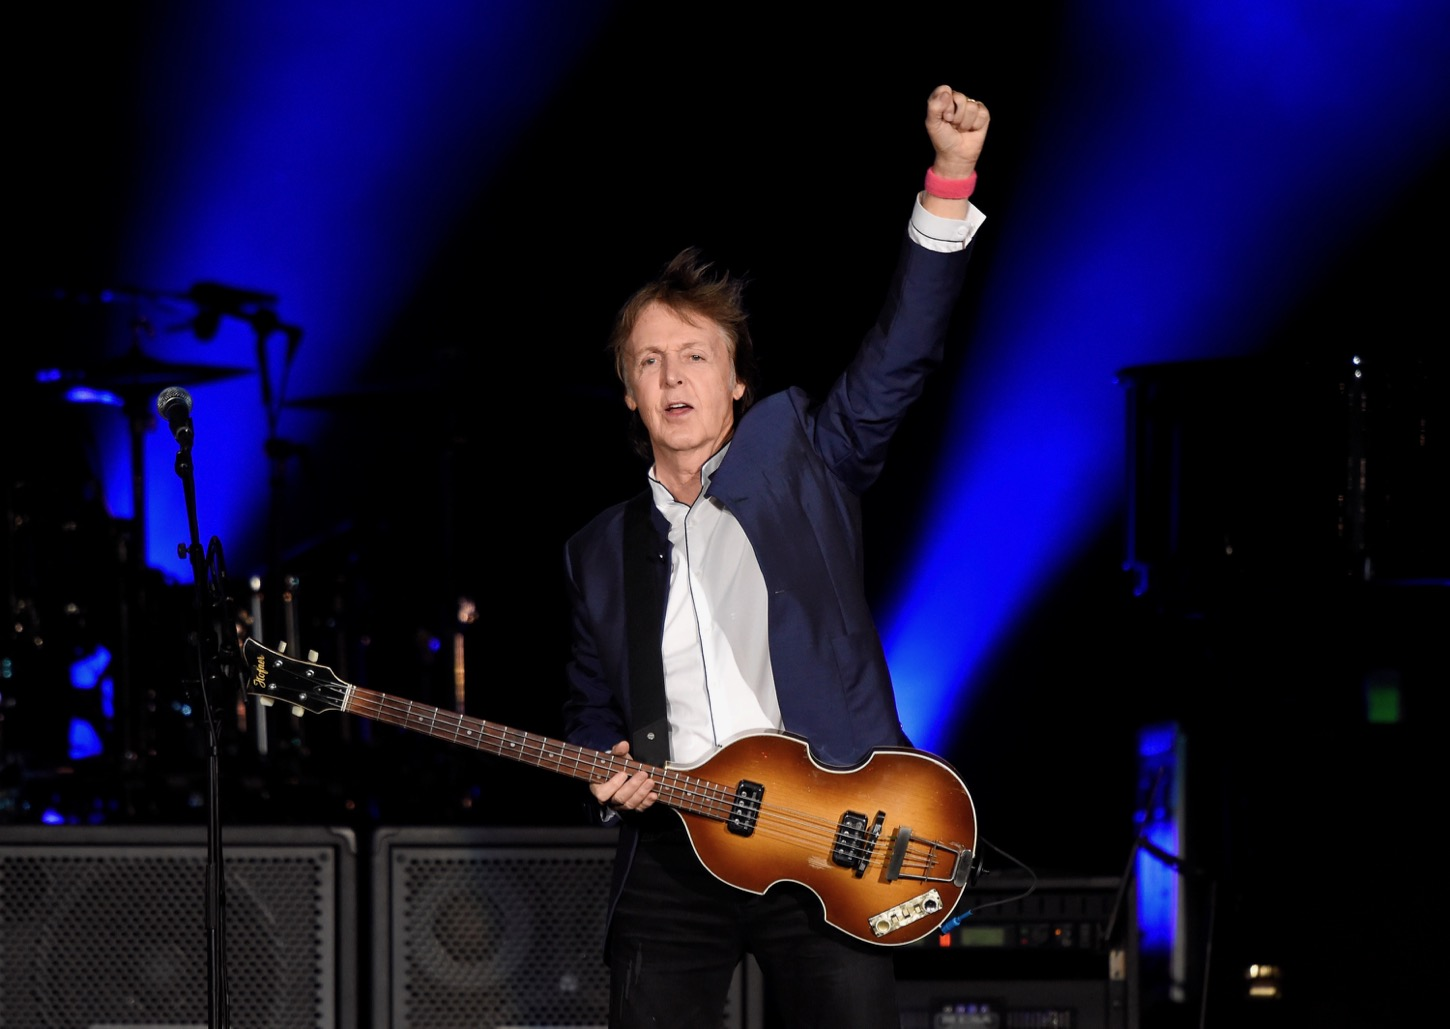 INDIO, CA - OCTOBER 15: Musician Paul McCartney performs during Desert Trip at The Empire Polo Club on October 15, 2016 in Indio, California. (Photo by Kevin Mazur/Getty Images for Desert Trip). Used With Permission.